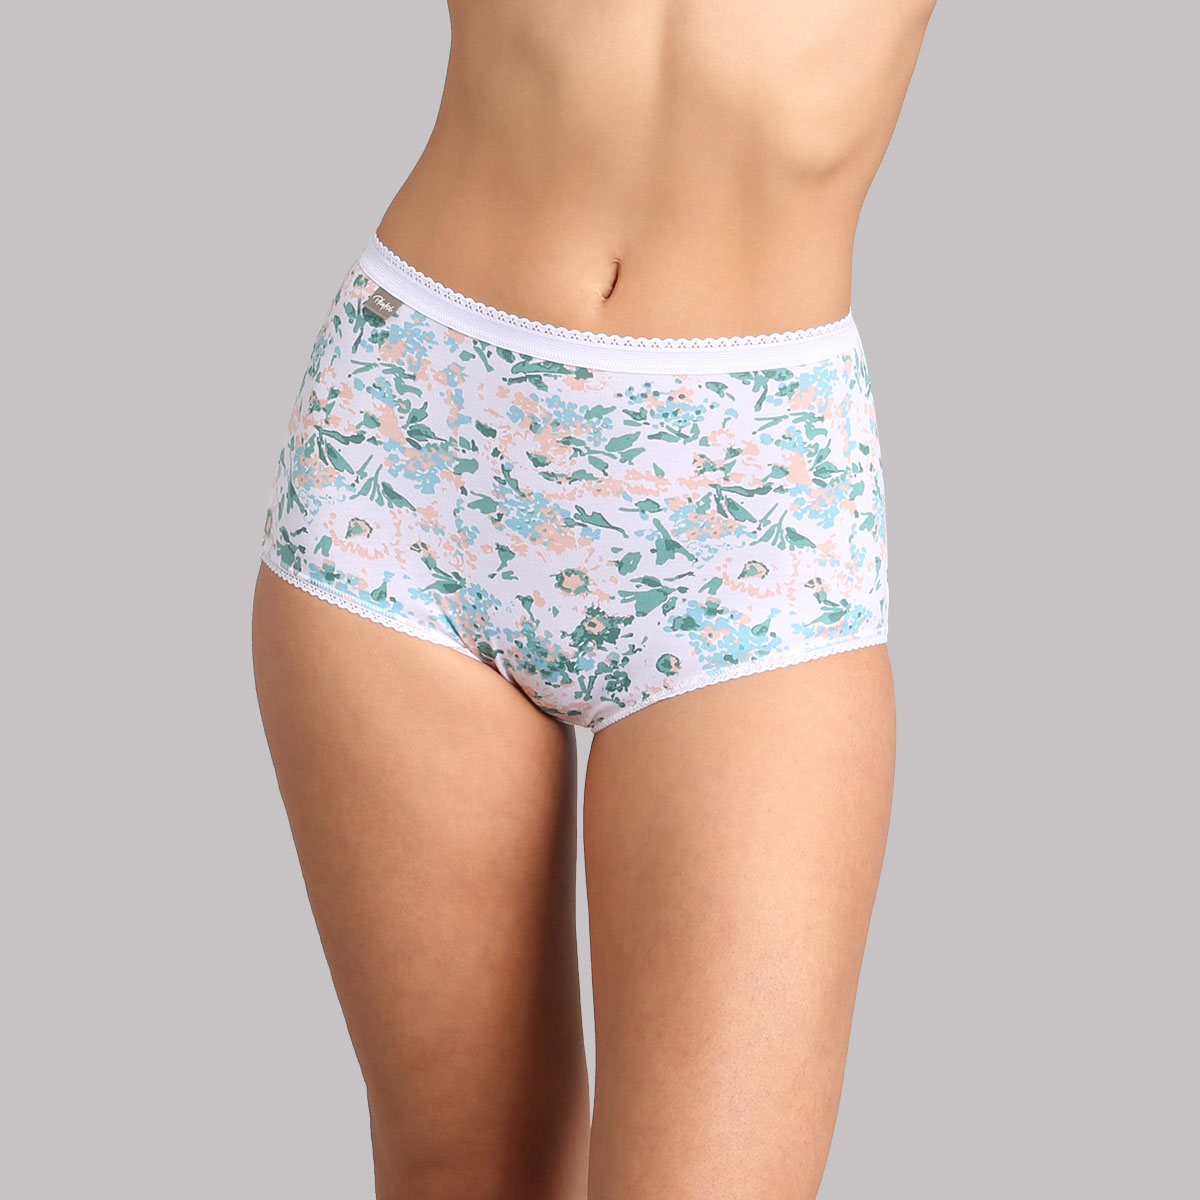 3 pack of high-rise knickers in green, white and floral print - Cotton Stretch, , PLAYTEX